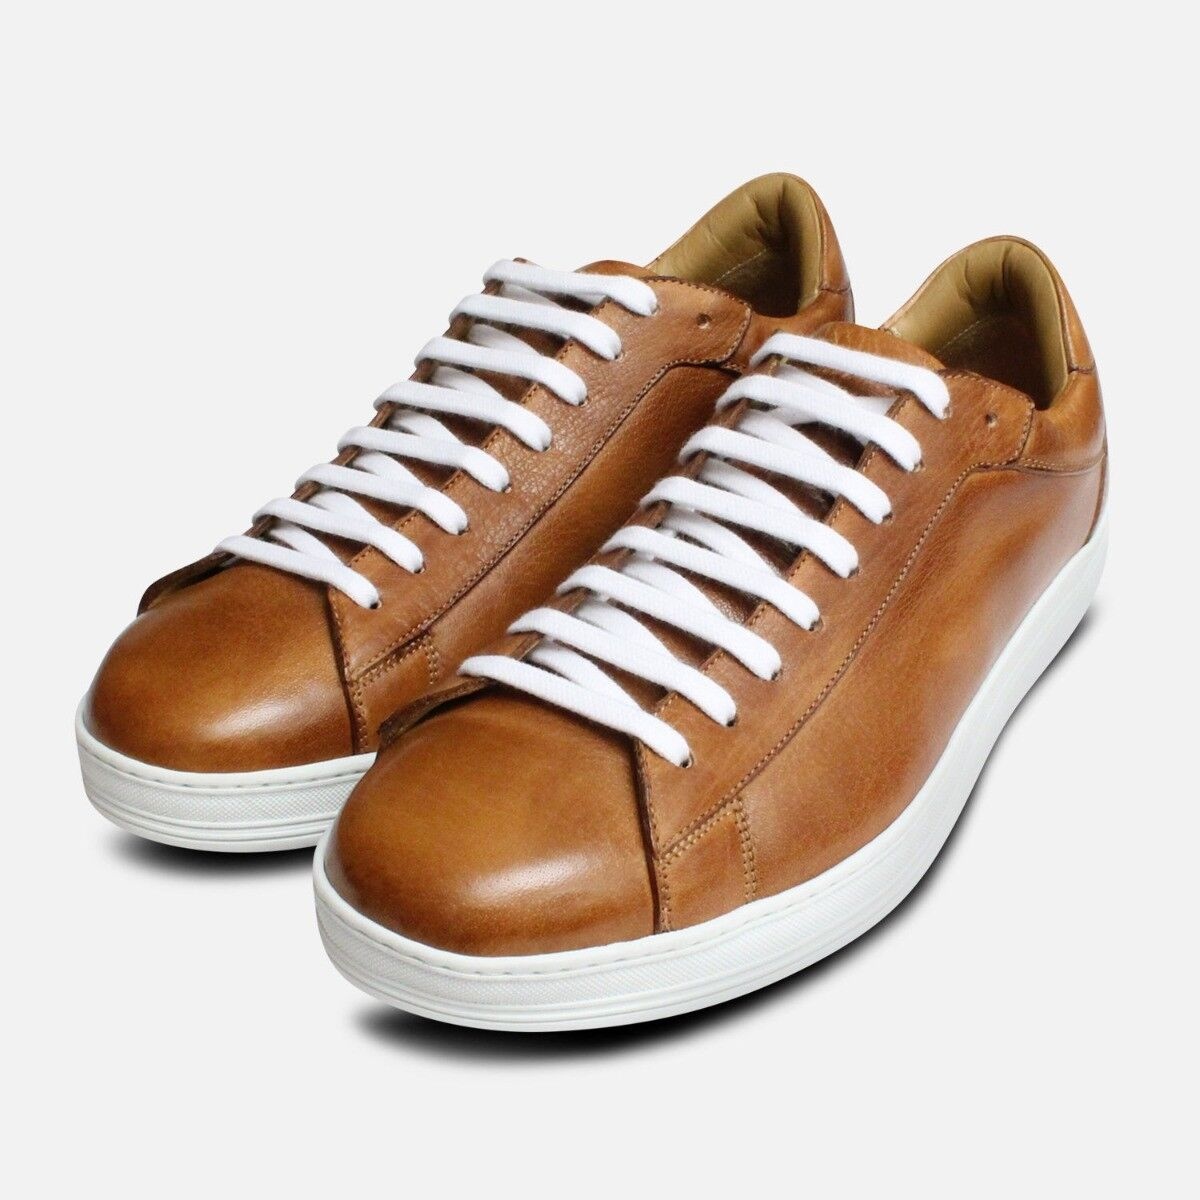 Luxury Buffalino Leather Design Sneakers